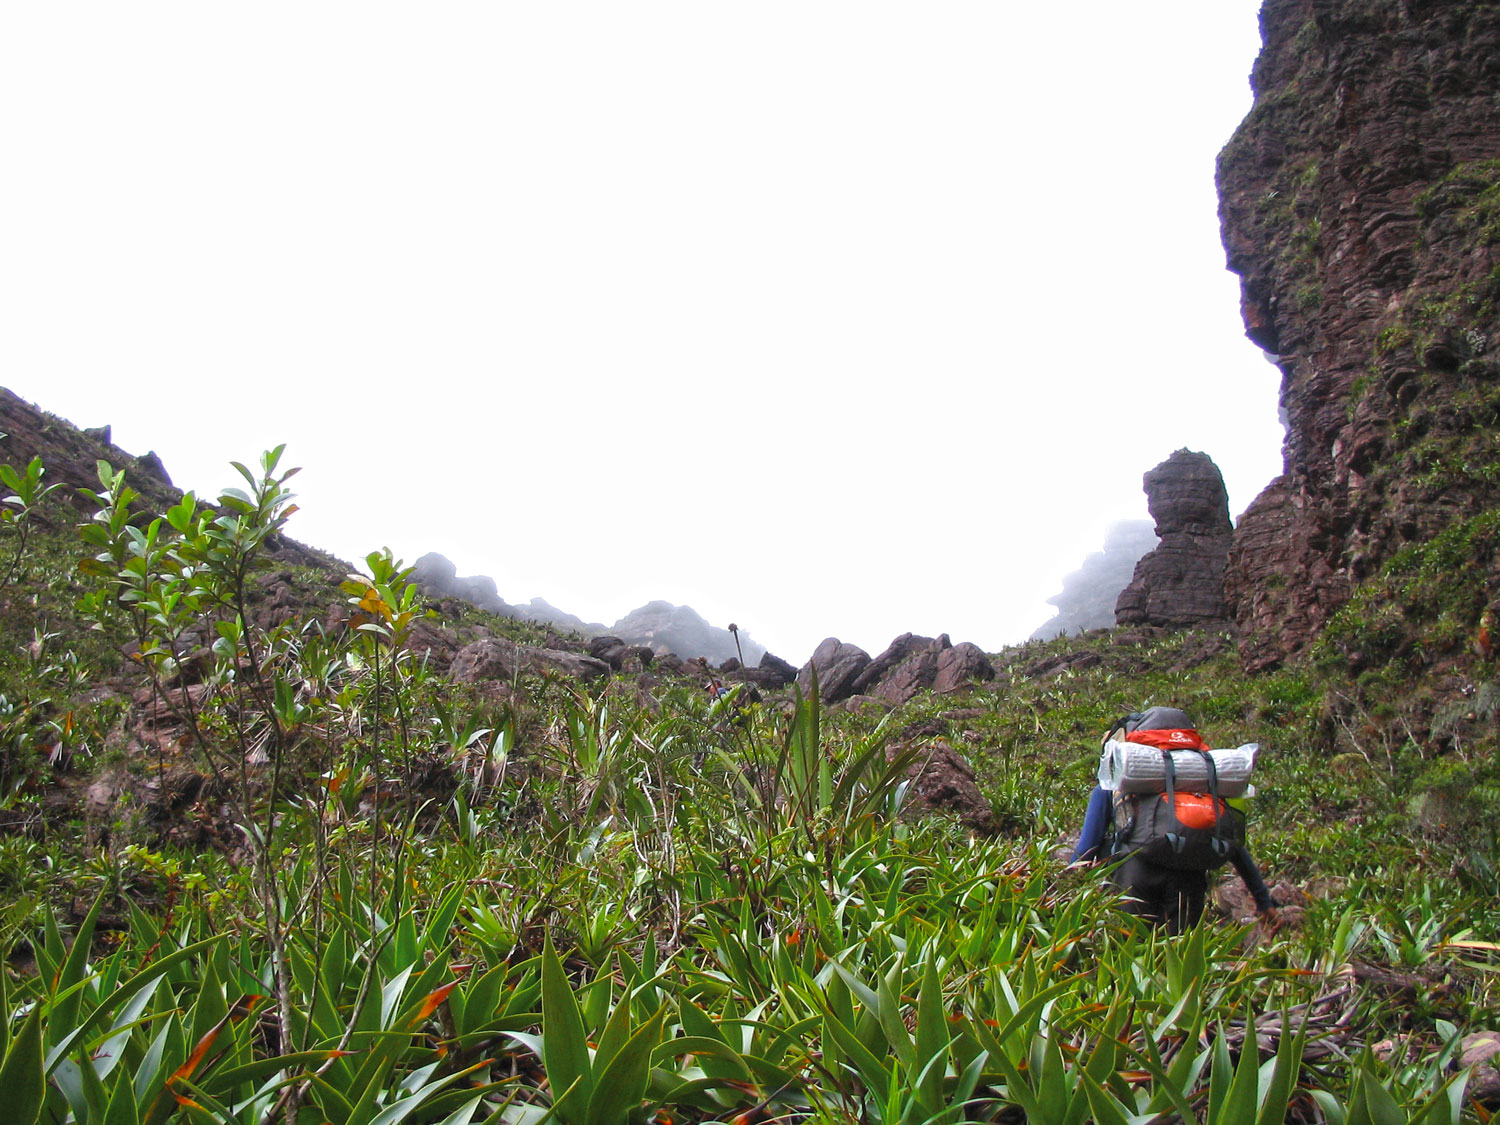 Olivia climbing the last stretch of the Roraima 'ramp', towards the 'gate'. Photograph by Nicholas Laughlin